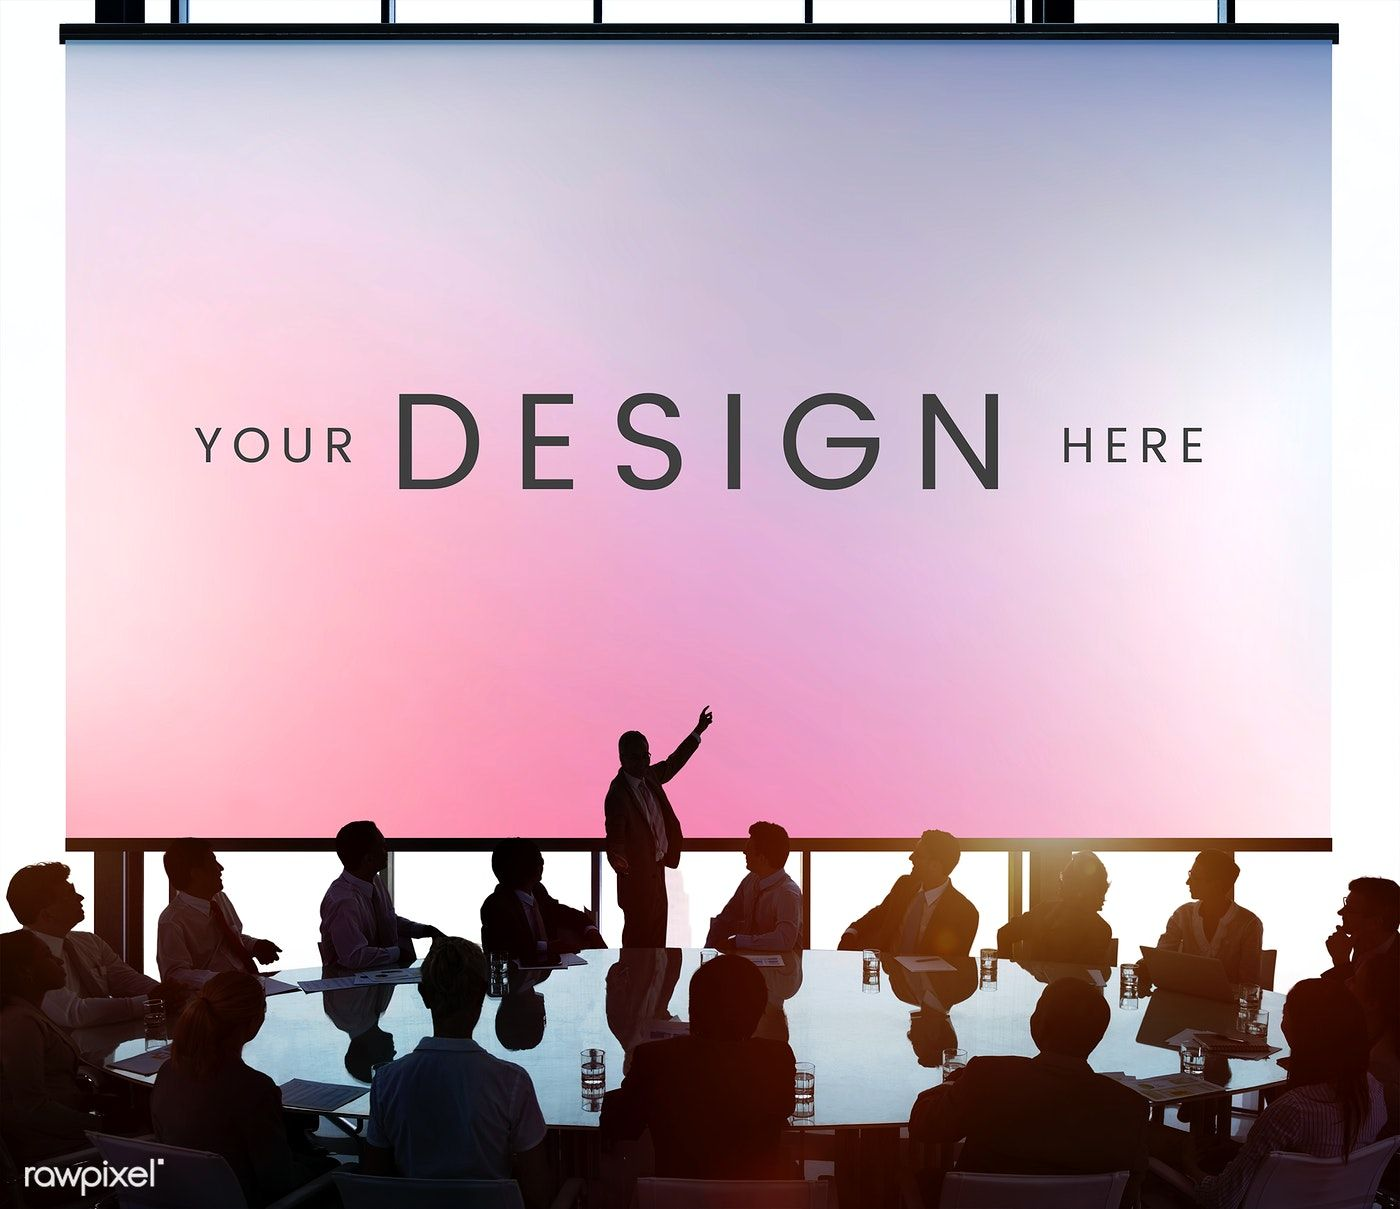 Download Premium Psd Of Business People In A Conference With A Projector Design Mockup Free Business People Stock Images Free